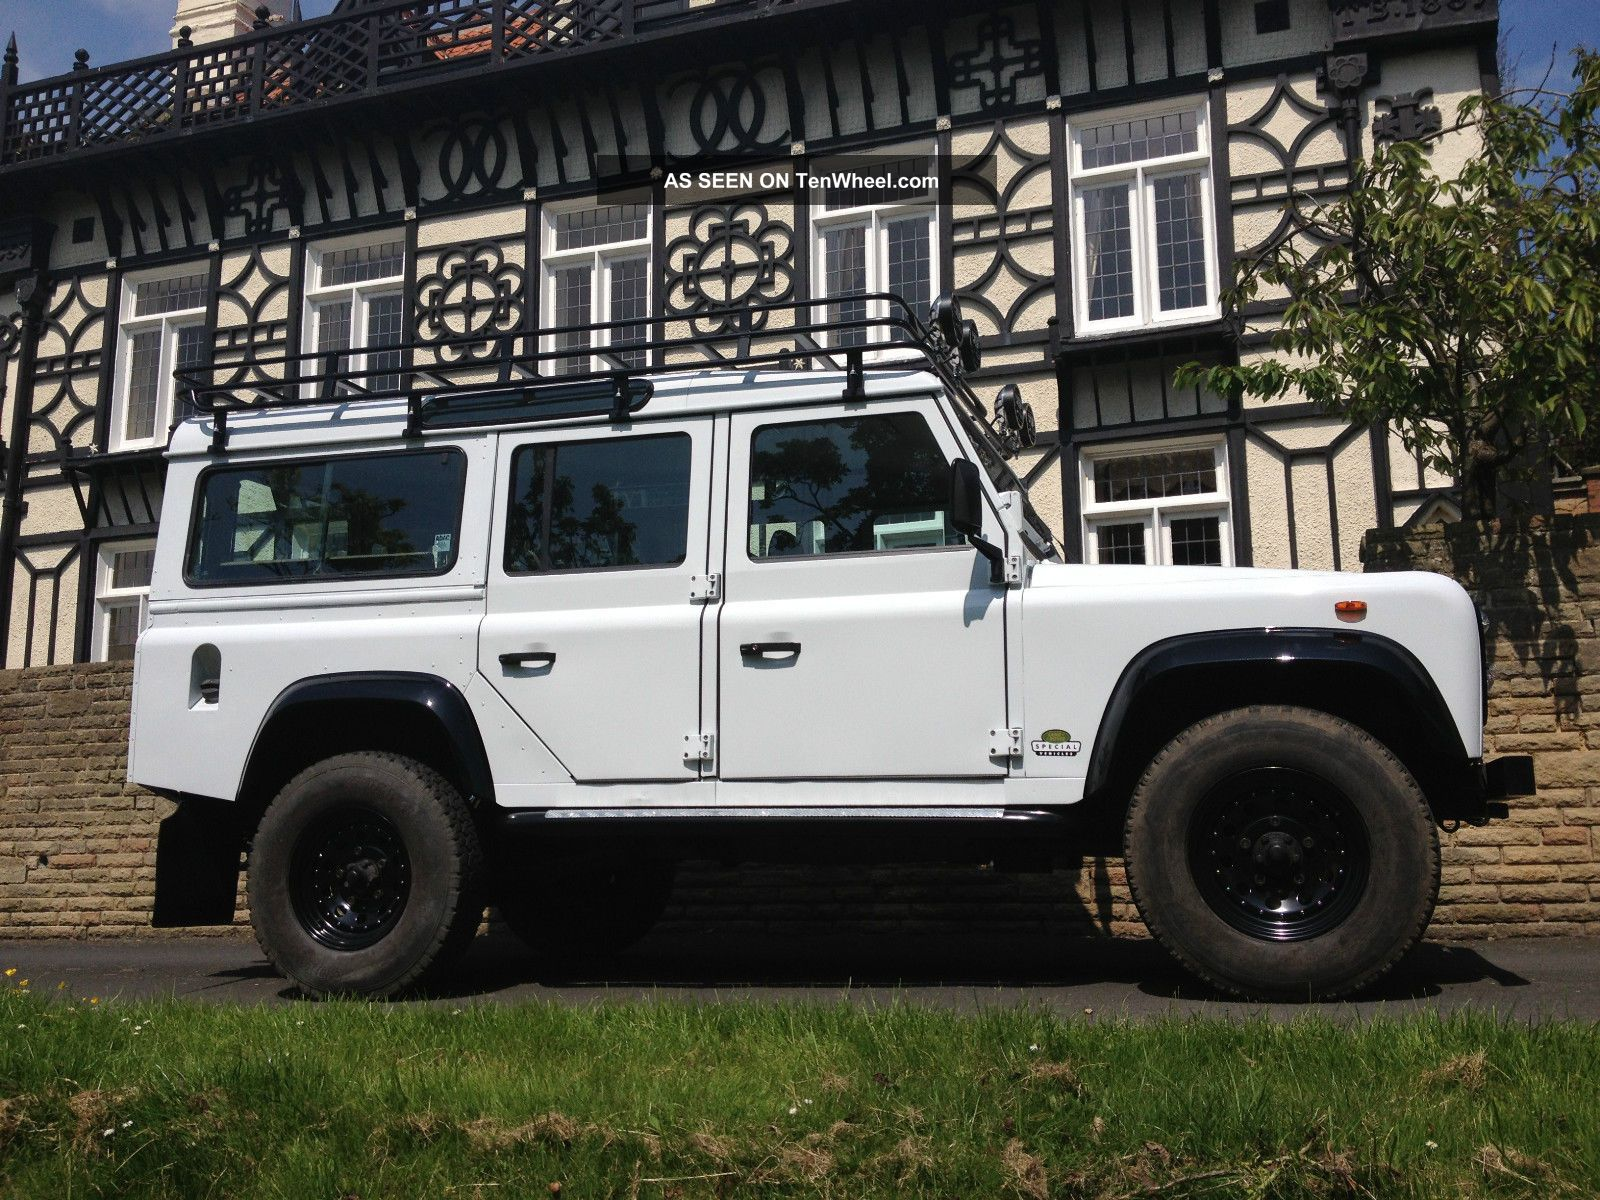 Landrover Defender Lhd 110 County Station Wagon 200 Tdi